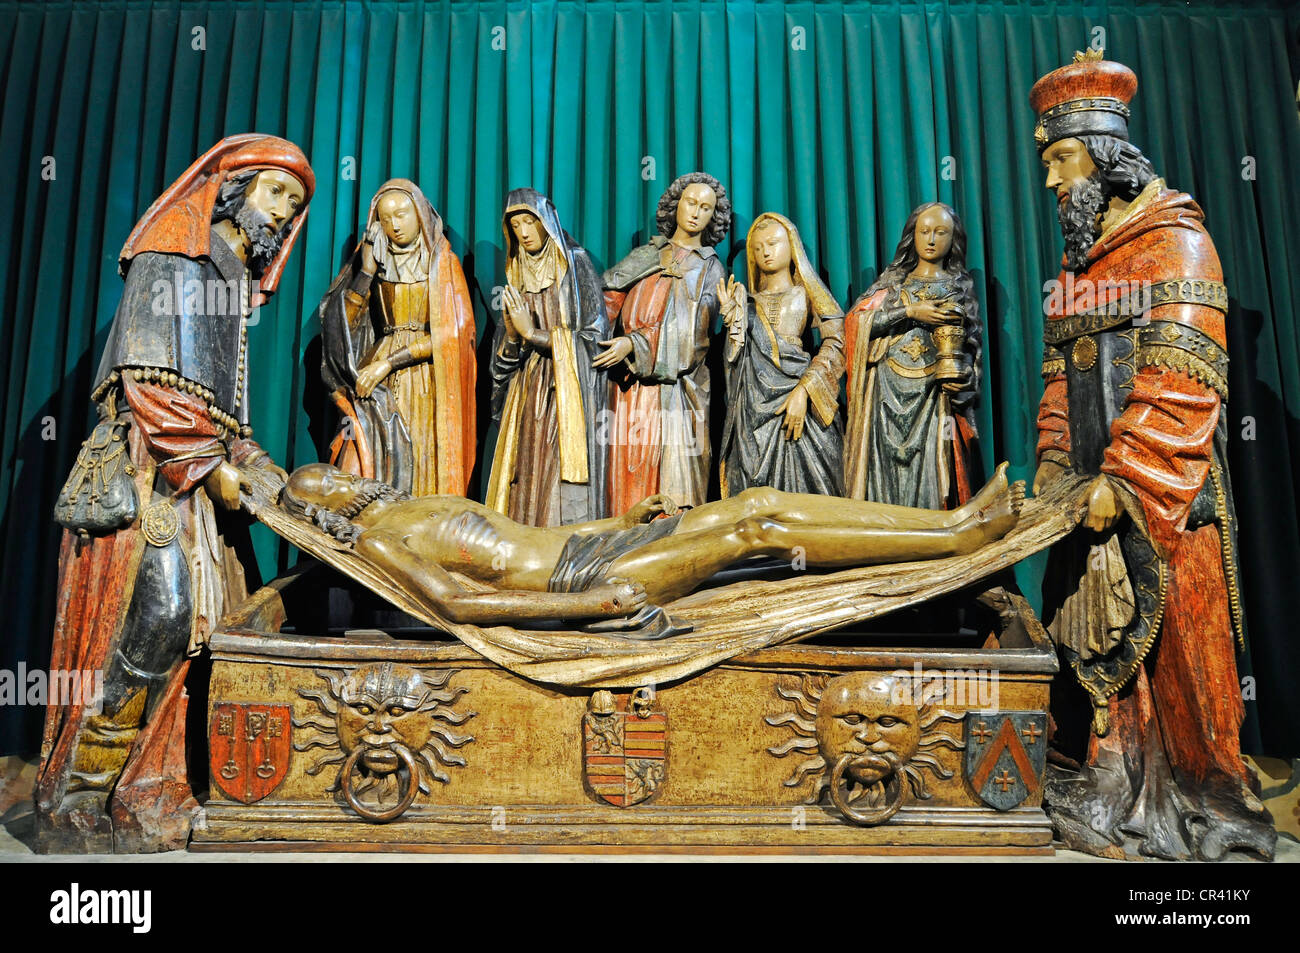 Entombment of Jesus, group of sculptures, Abbaye Saint-Pierre de Moissac abbey church, Via Podiensis or Chemin de - Stock Image